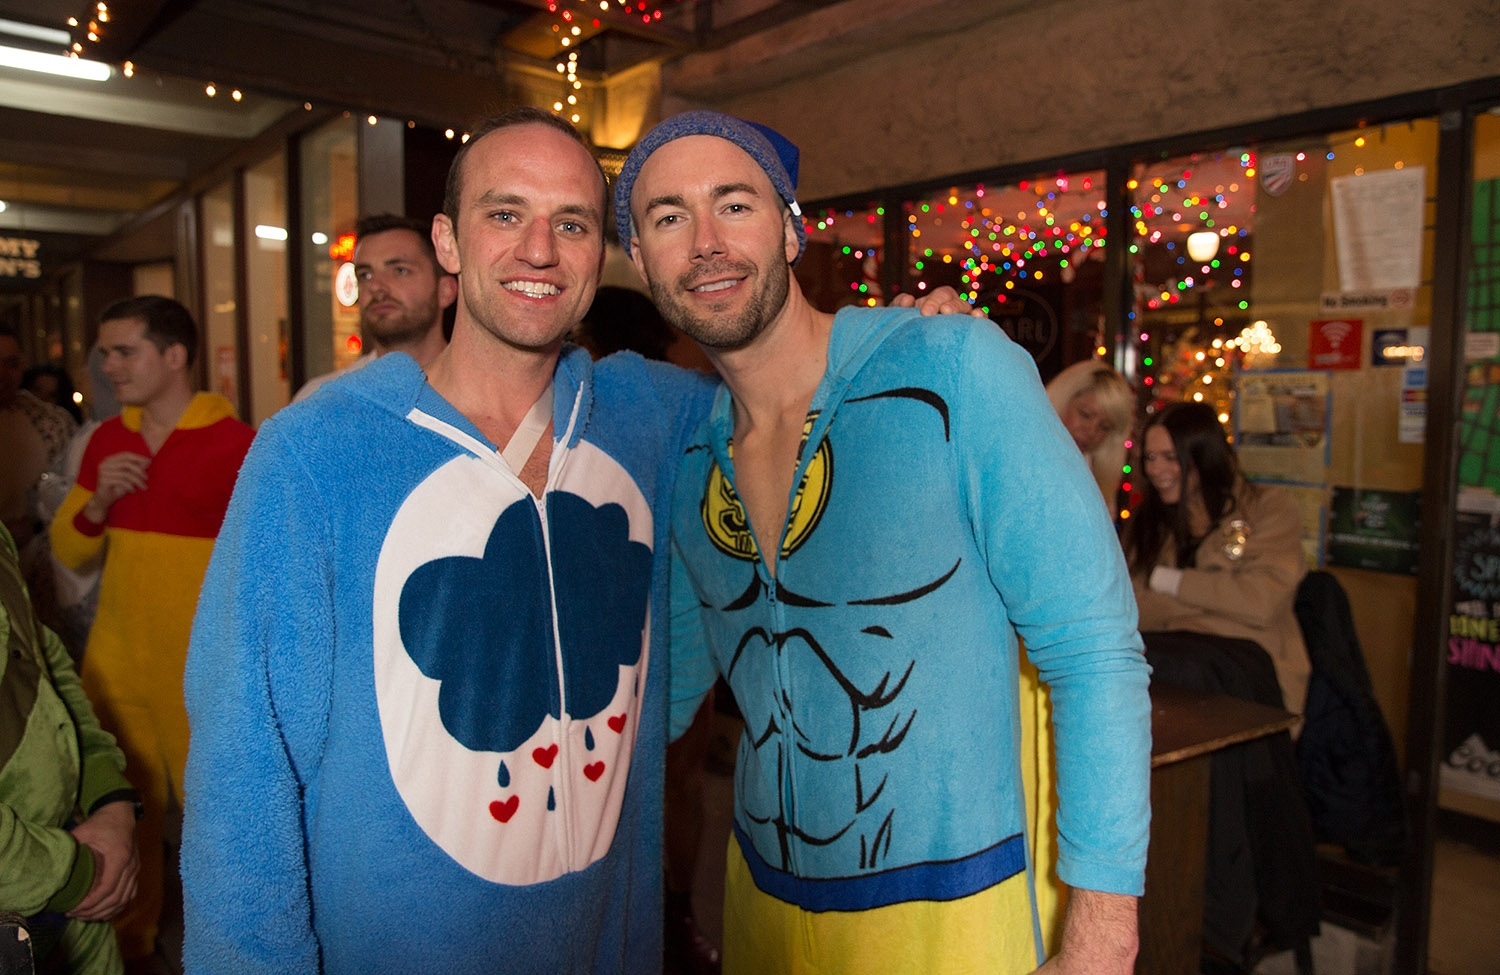 Pub runners have some drinks and bust a few moves during the onesie-themed Pub Run at Moses Rose's Hideout, Jan. 4, 2019. <em><b>Photo by B. Kay Richter   Heron contributor</b></em>